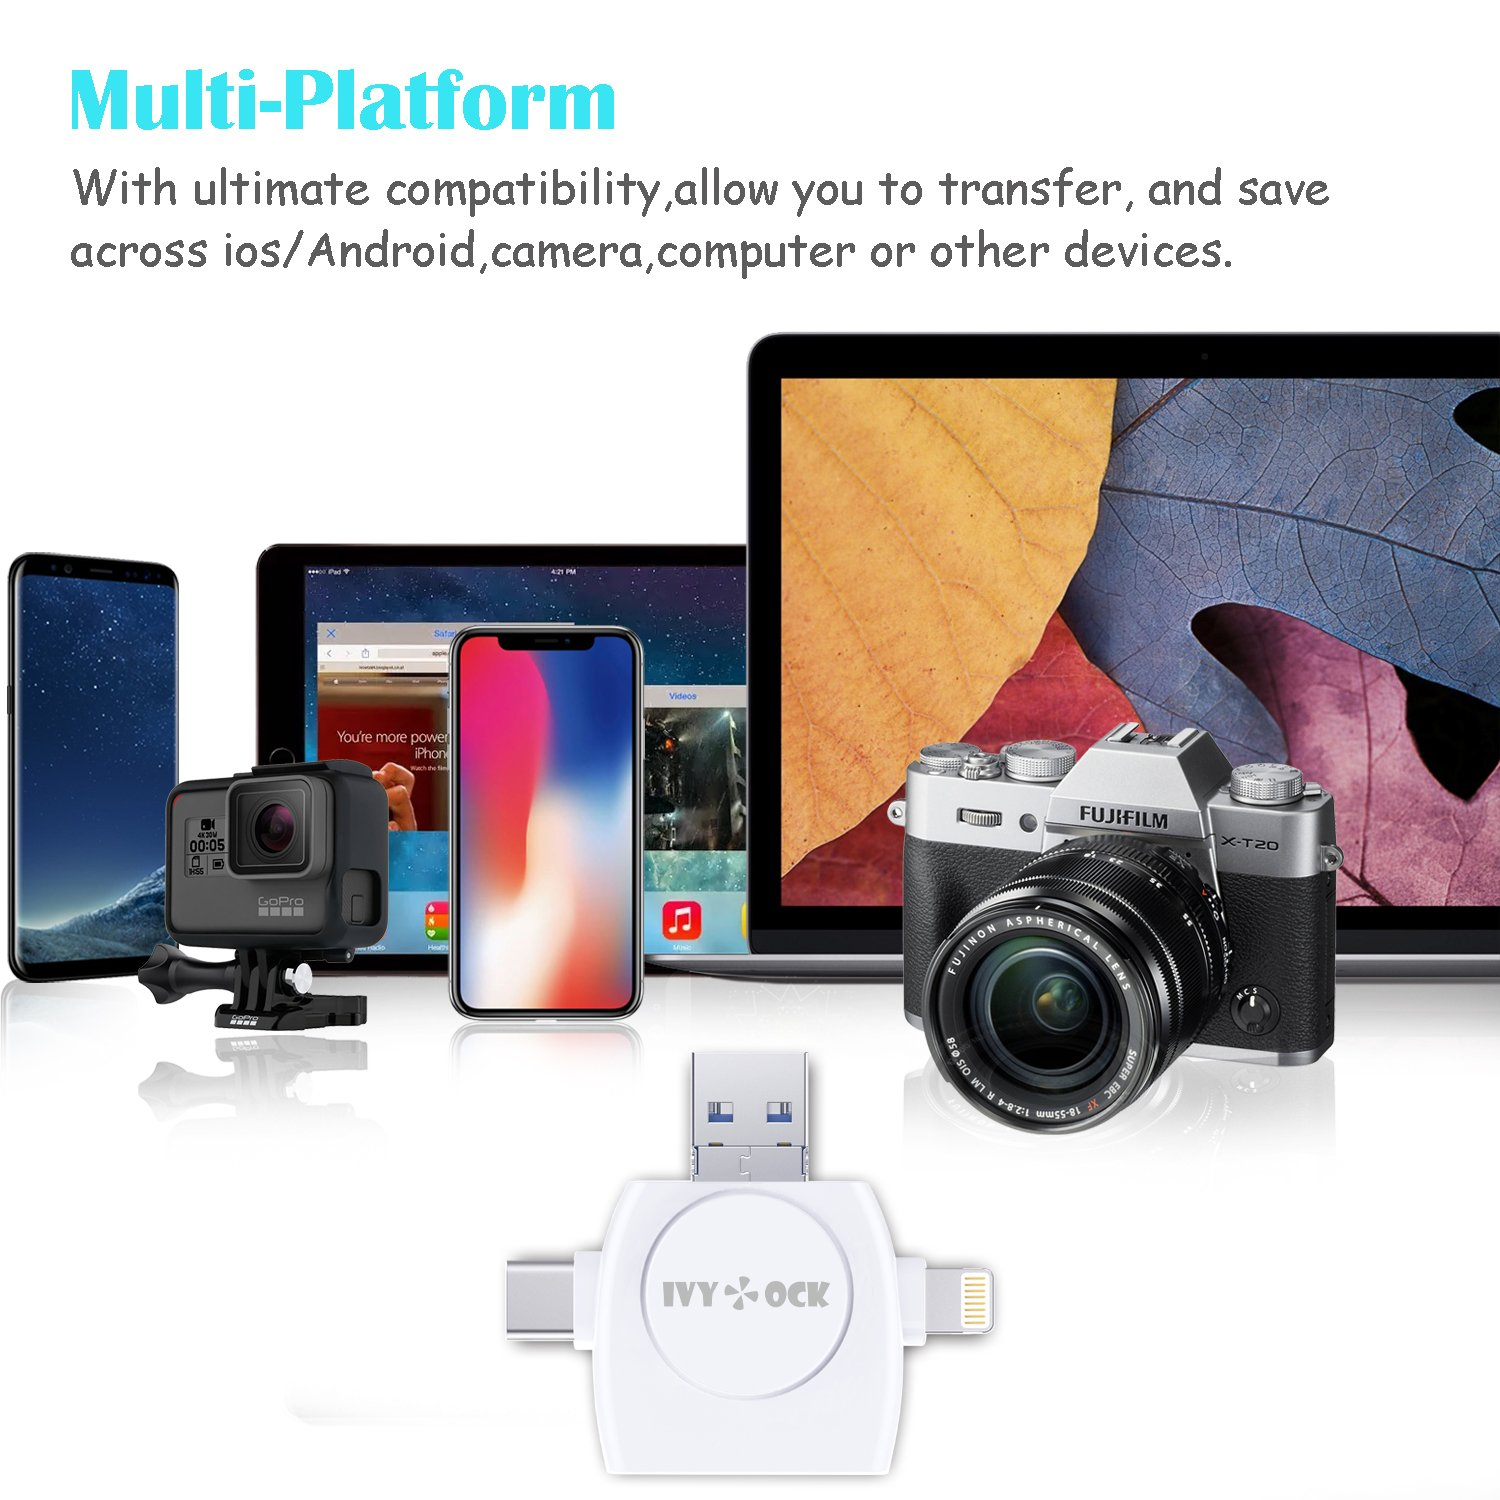 SD & Micro SD Card Reader - Memory Card Camera Reader Adapter for iPhone/iPad/GALAXY S8/Android/Mac/PC/MacBook. With Lightning,Micro USB,USB Type C,USB 3.0 Connector (4 in 1) by IVYOCK (Image #4)